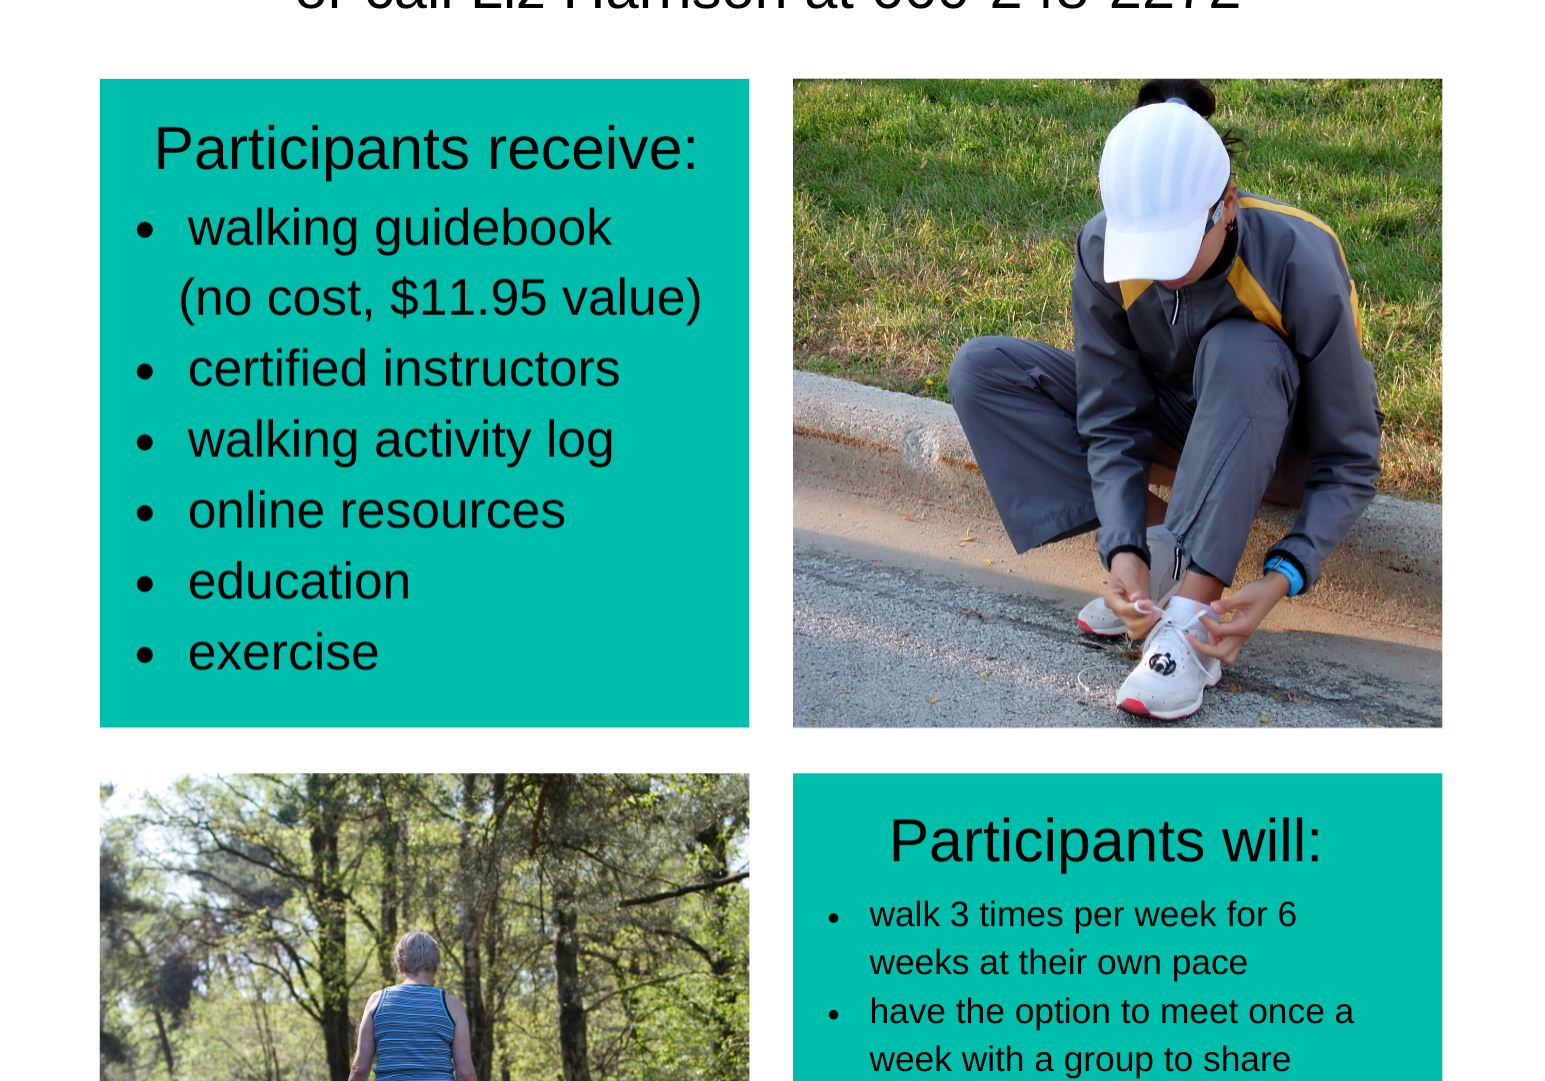 Walk With Ease Flyer 8 2 9 12 2020